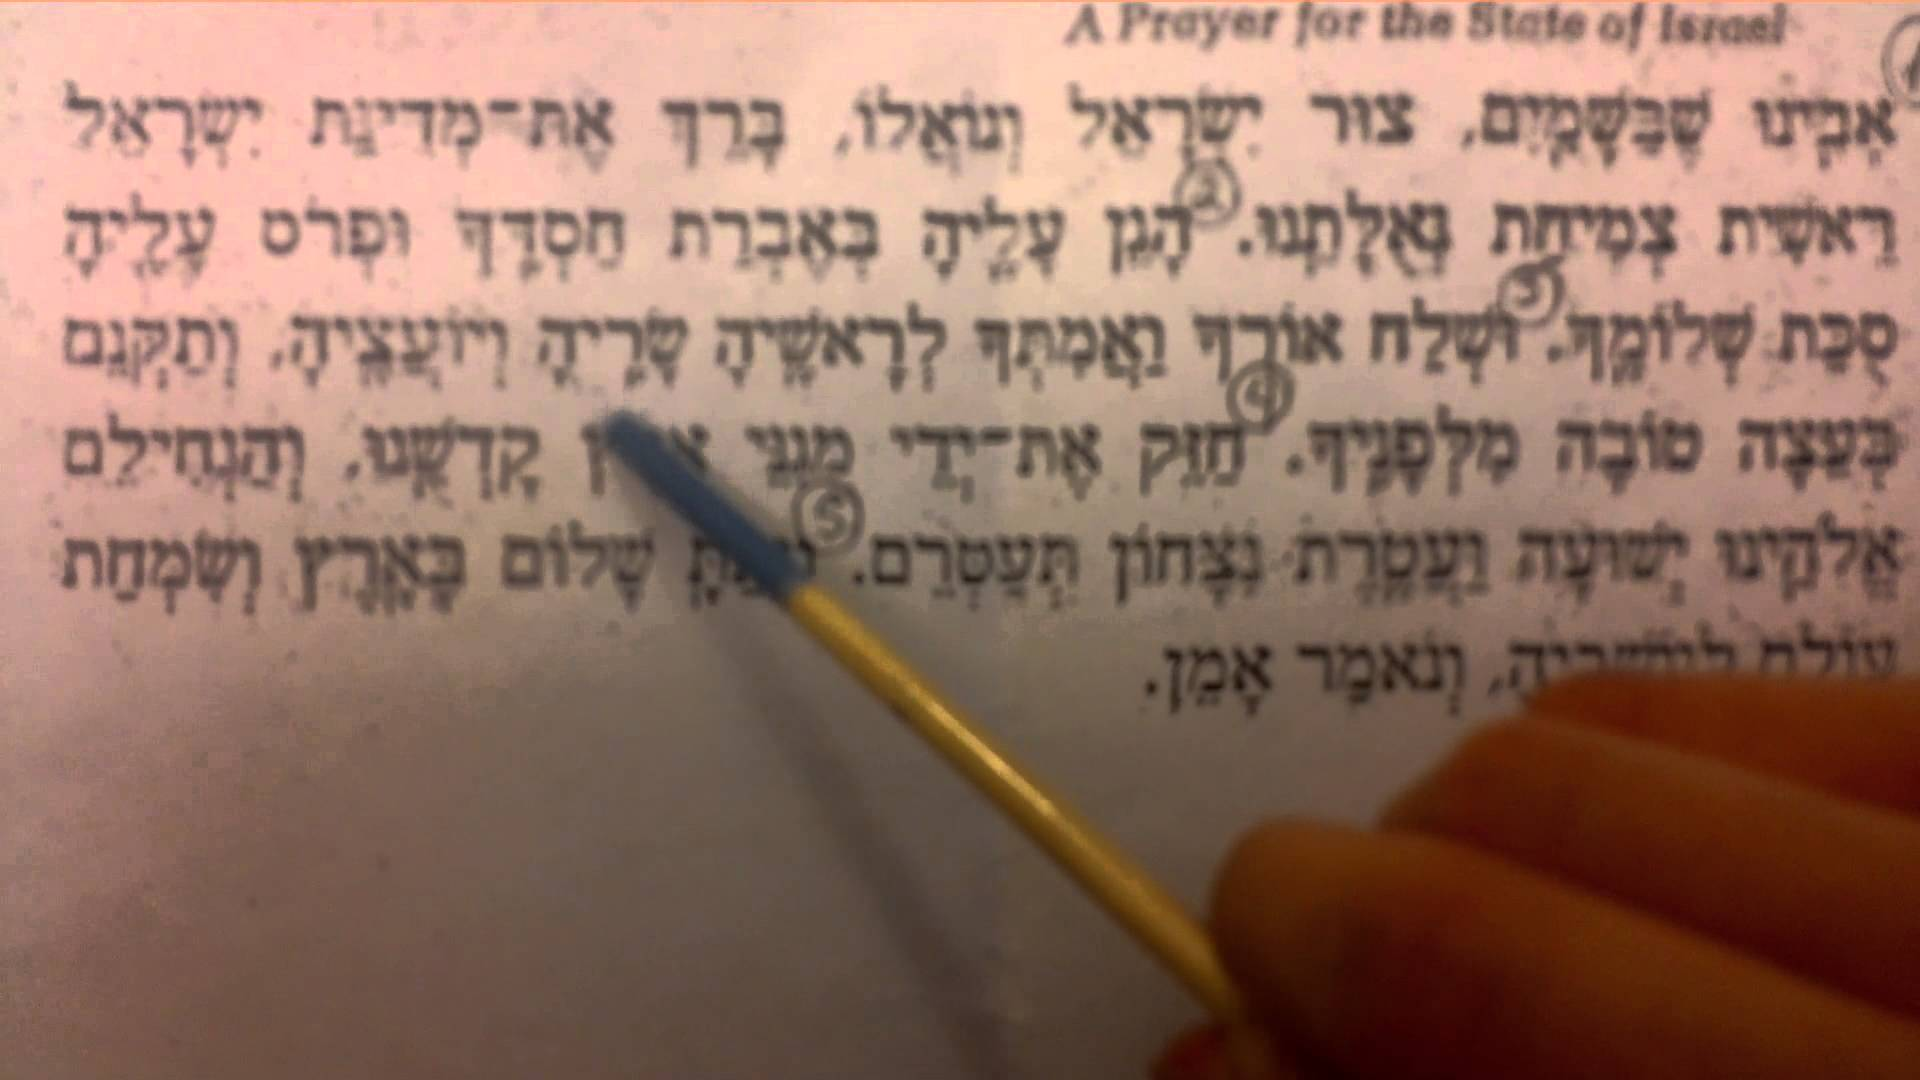 Learn to Recite the First Paragraph of the Traditional Prayer for the State of Israel